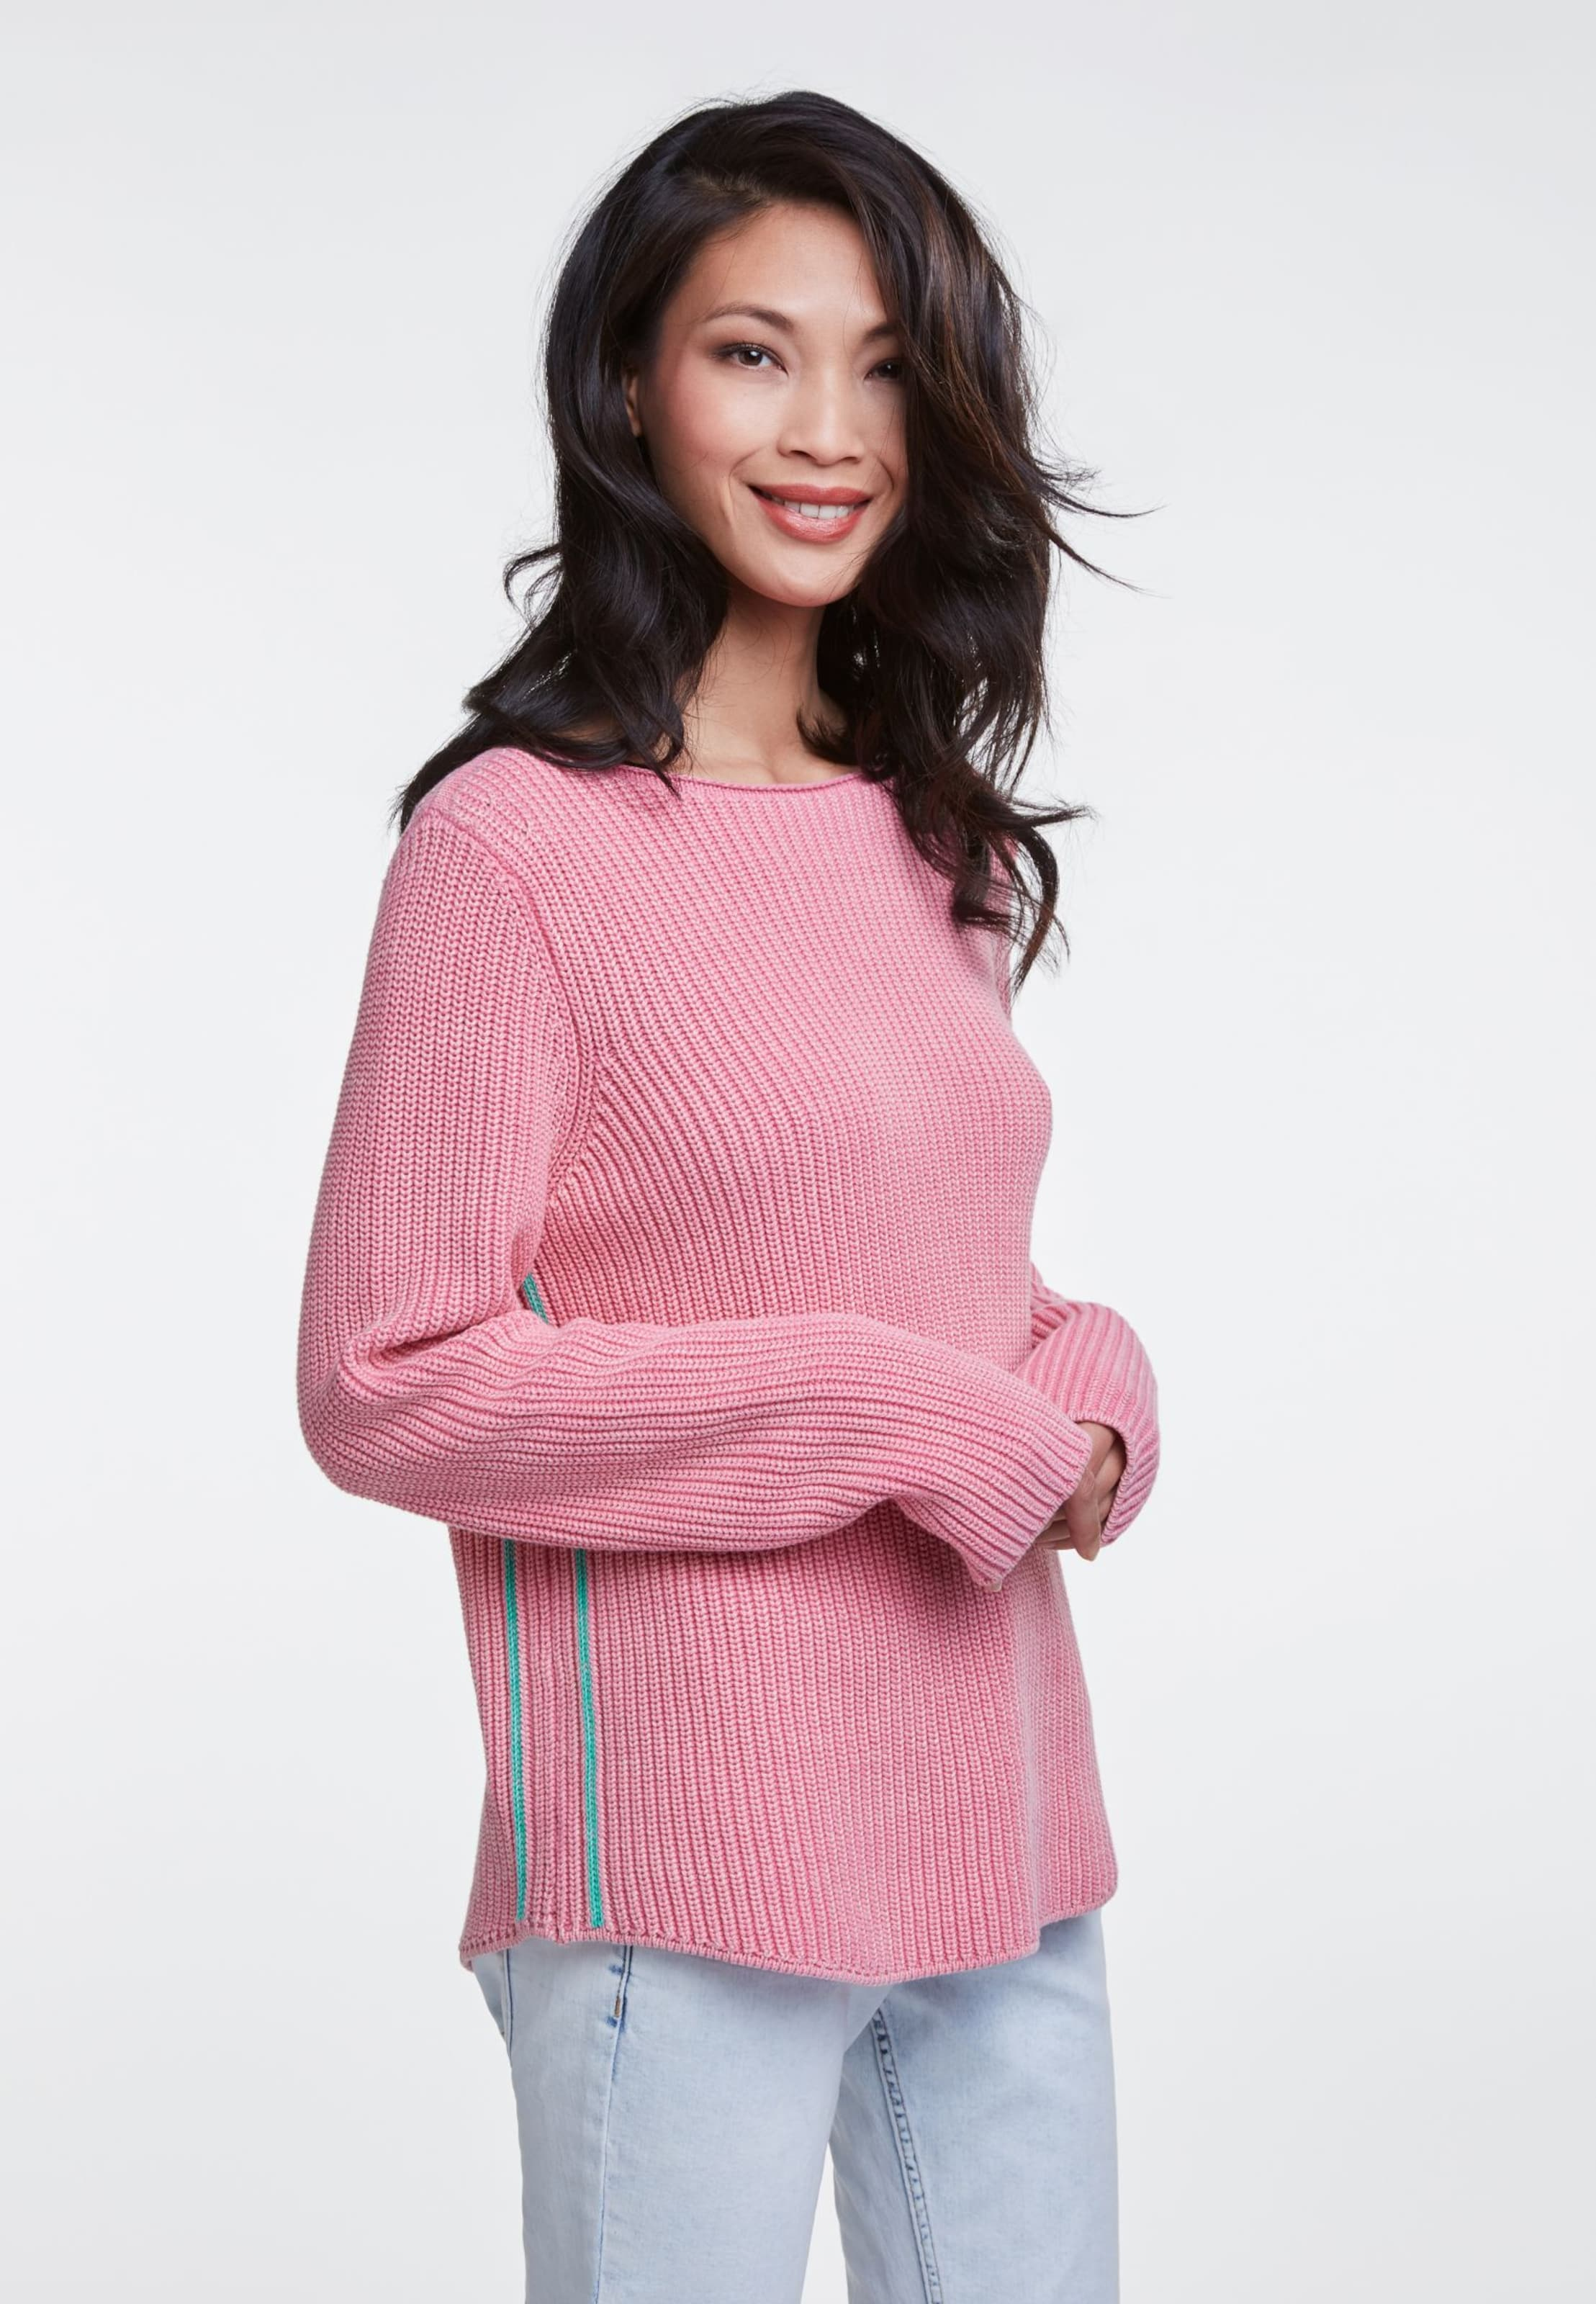 Pink Strickpullover Oui Strickpullover In In Oui In Pink Oui Strickpullover tsdQhrCx